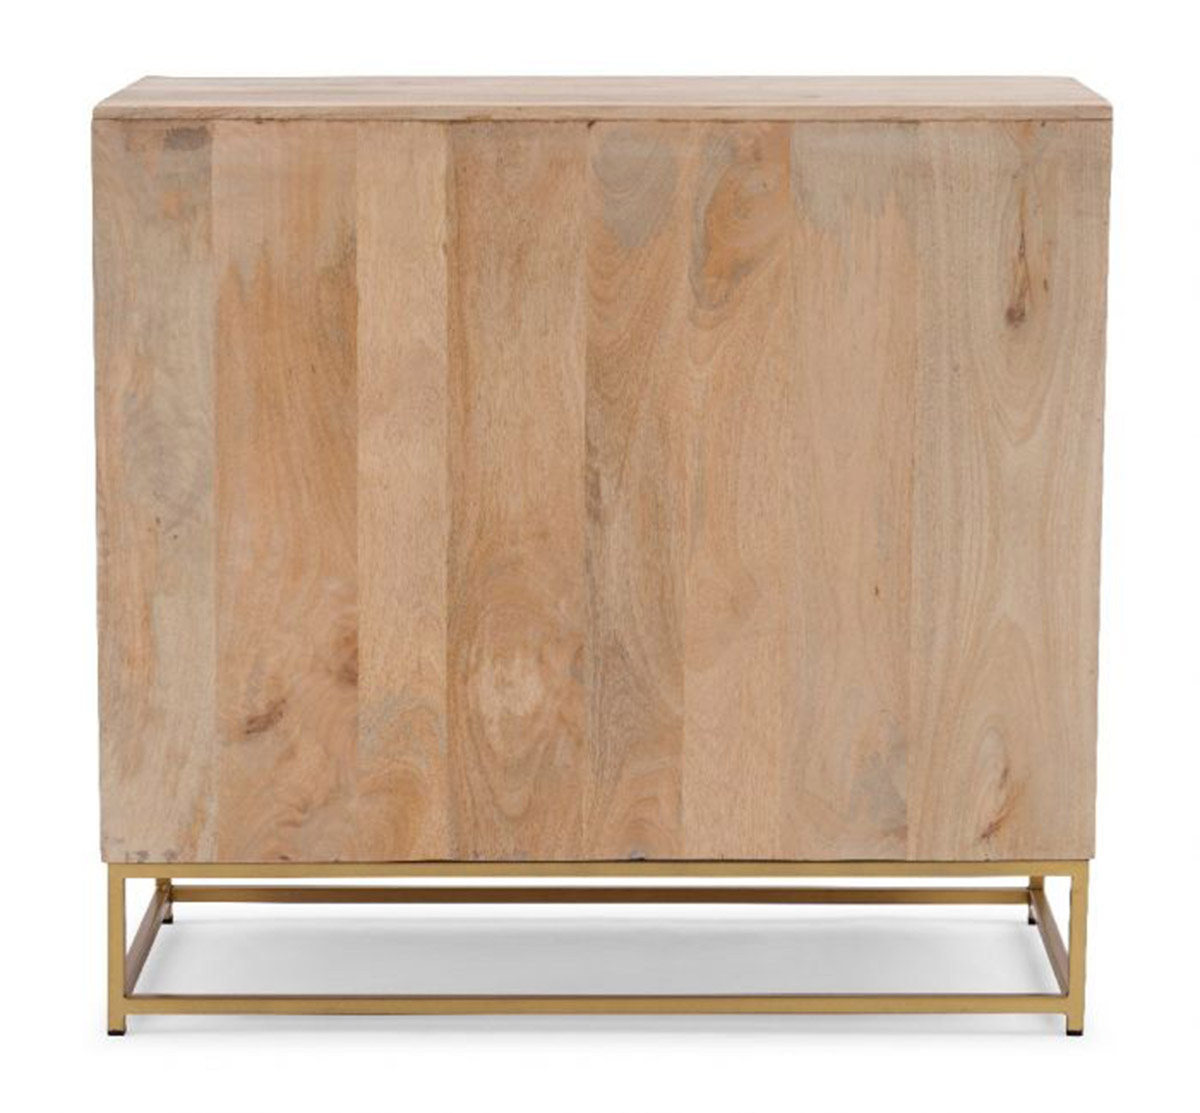 Powell Janie Rattan 2-Sliding Doors Cabinet - Natural and Gold